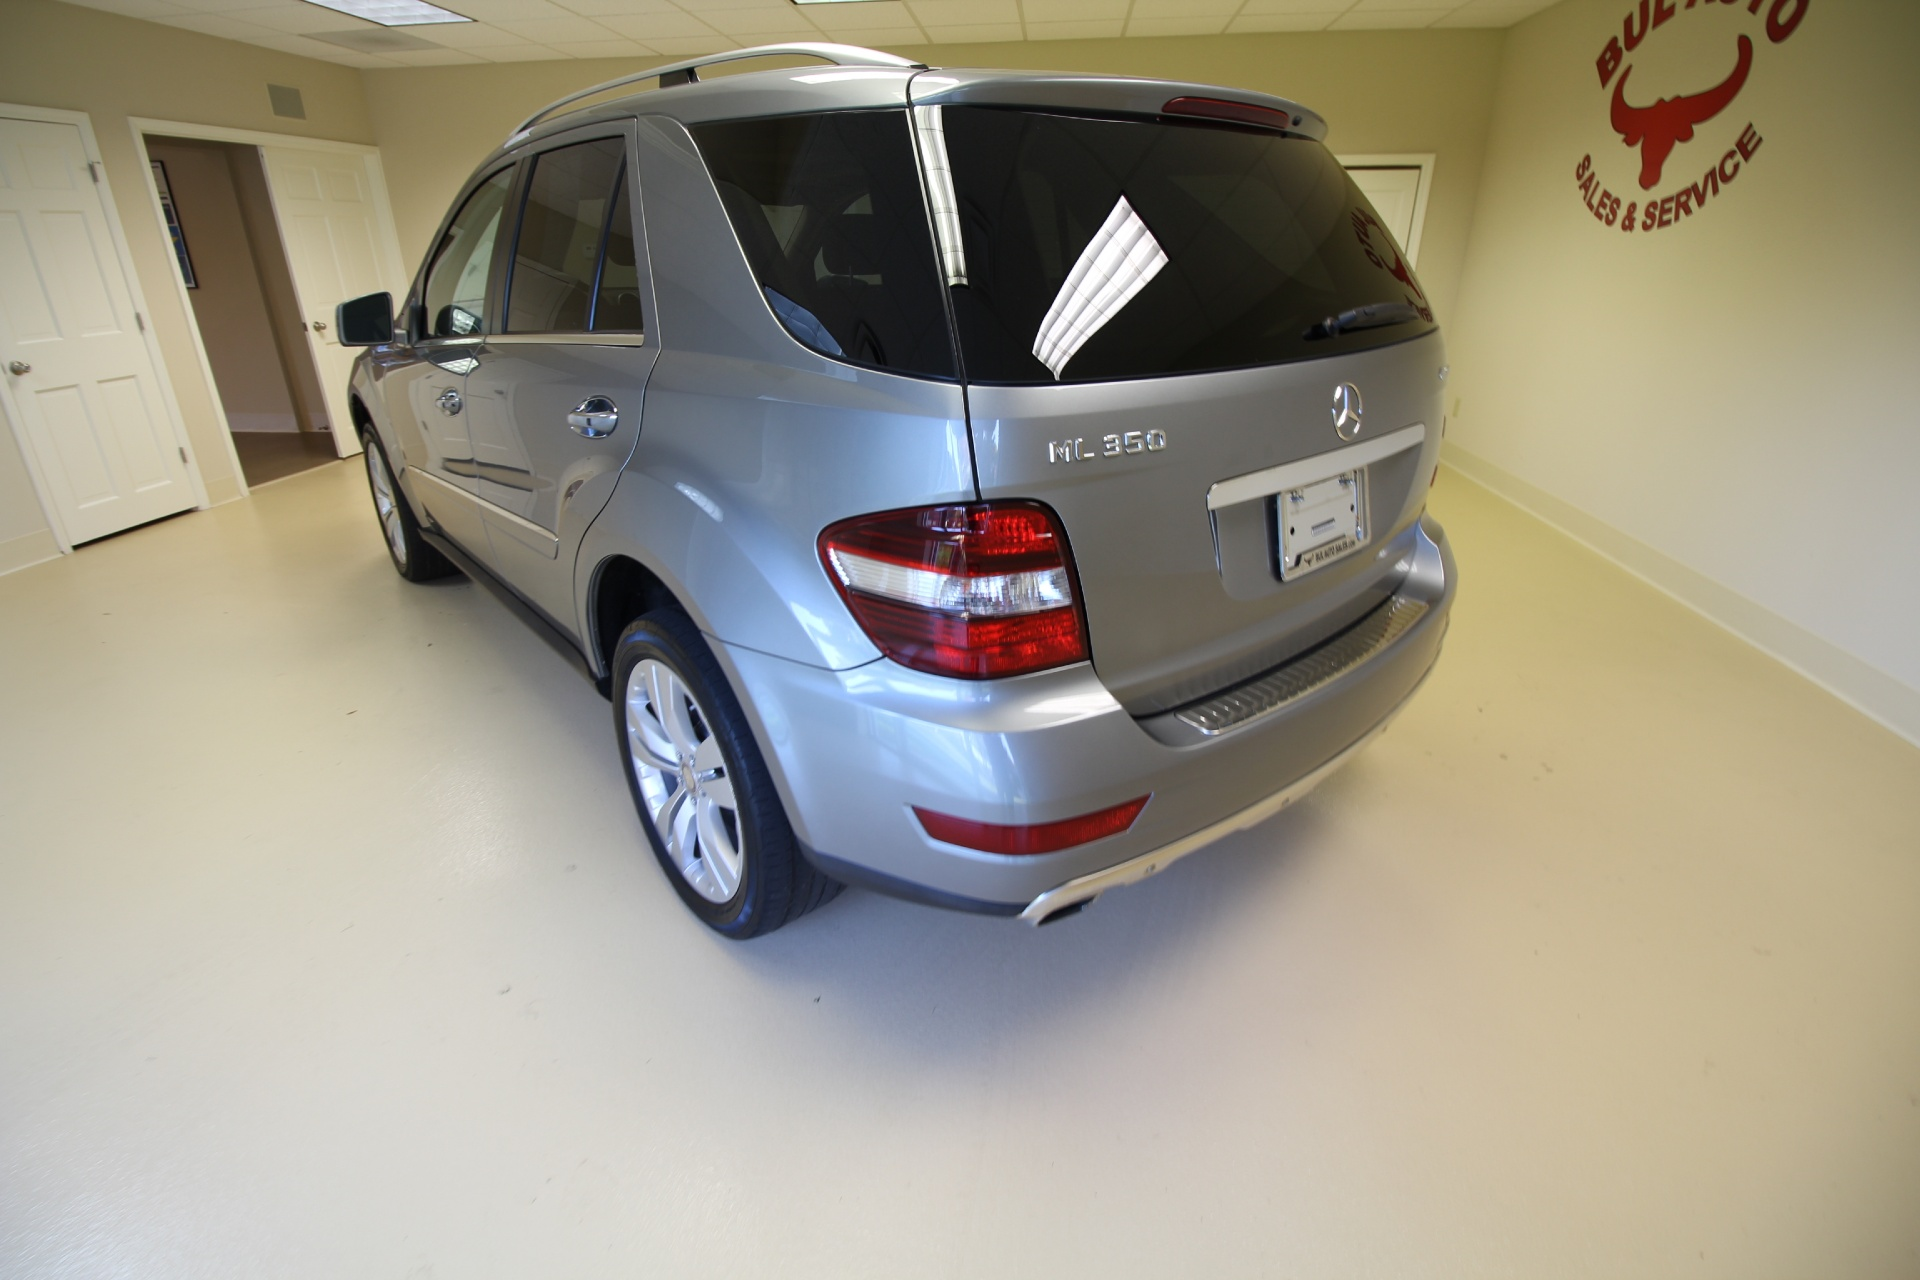 2011 mercedes benz m class ml350 4matic stock 16265 for for 2011 mercedes benz m class ml350